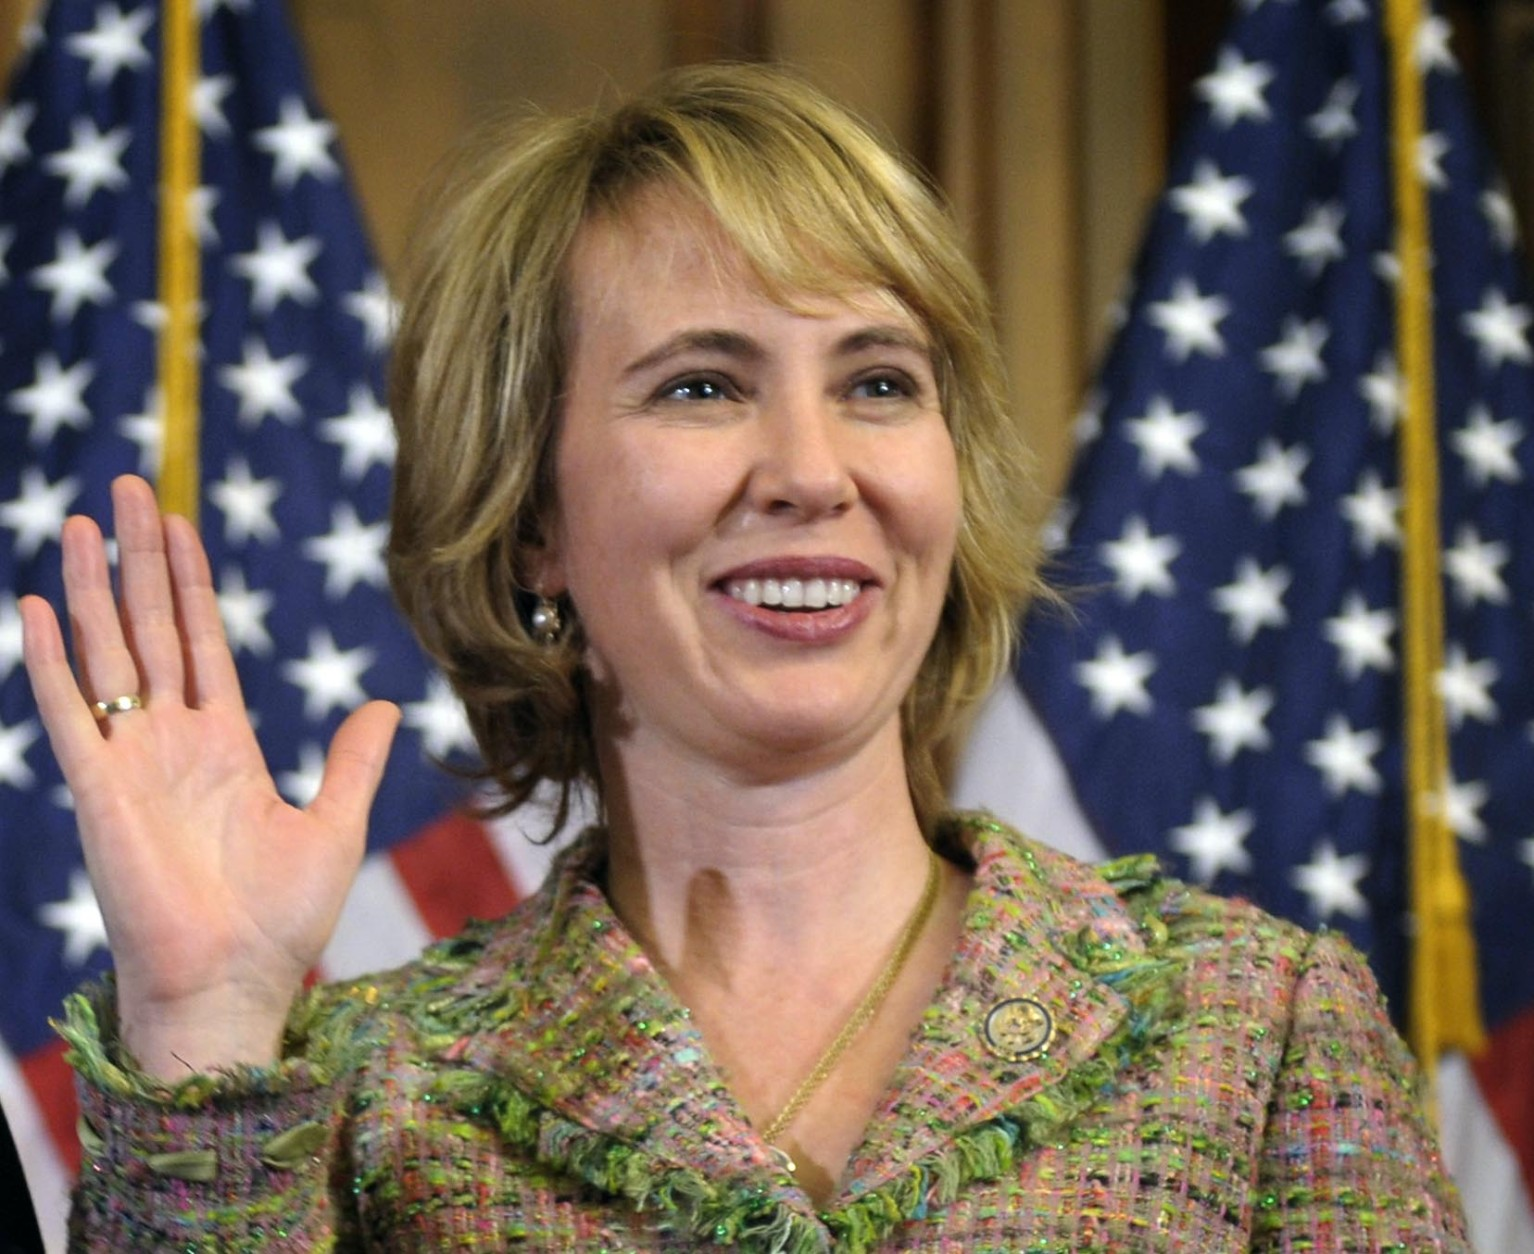 FILE - In this Jan. 5, 2011 file photo, Rep. Gabrielle Giffords, D-Ariz., takes part in a reenactment of her swearing-in, on Capitol Hill in Washington. Time magazine has named Giffords one of the 100 most influential people in the world. (AP Photo/Susan Walsh, File)